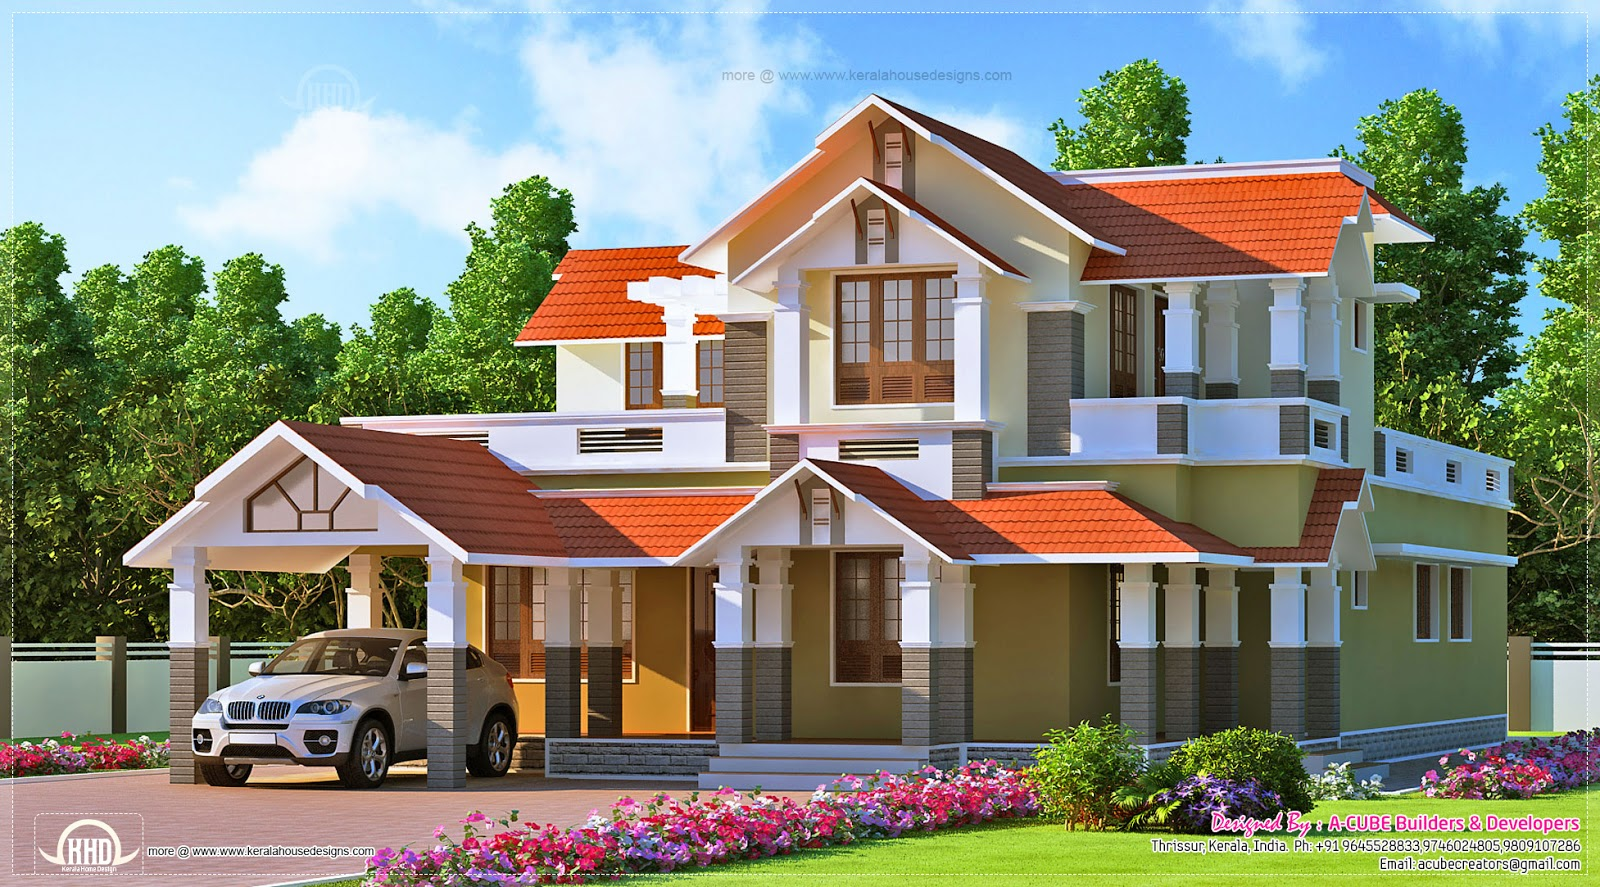 Eco Friendly Houses: Kerala Style Dream Home Design